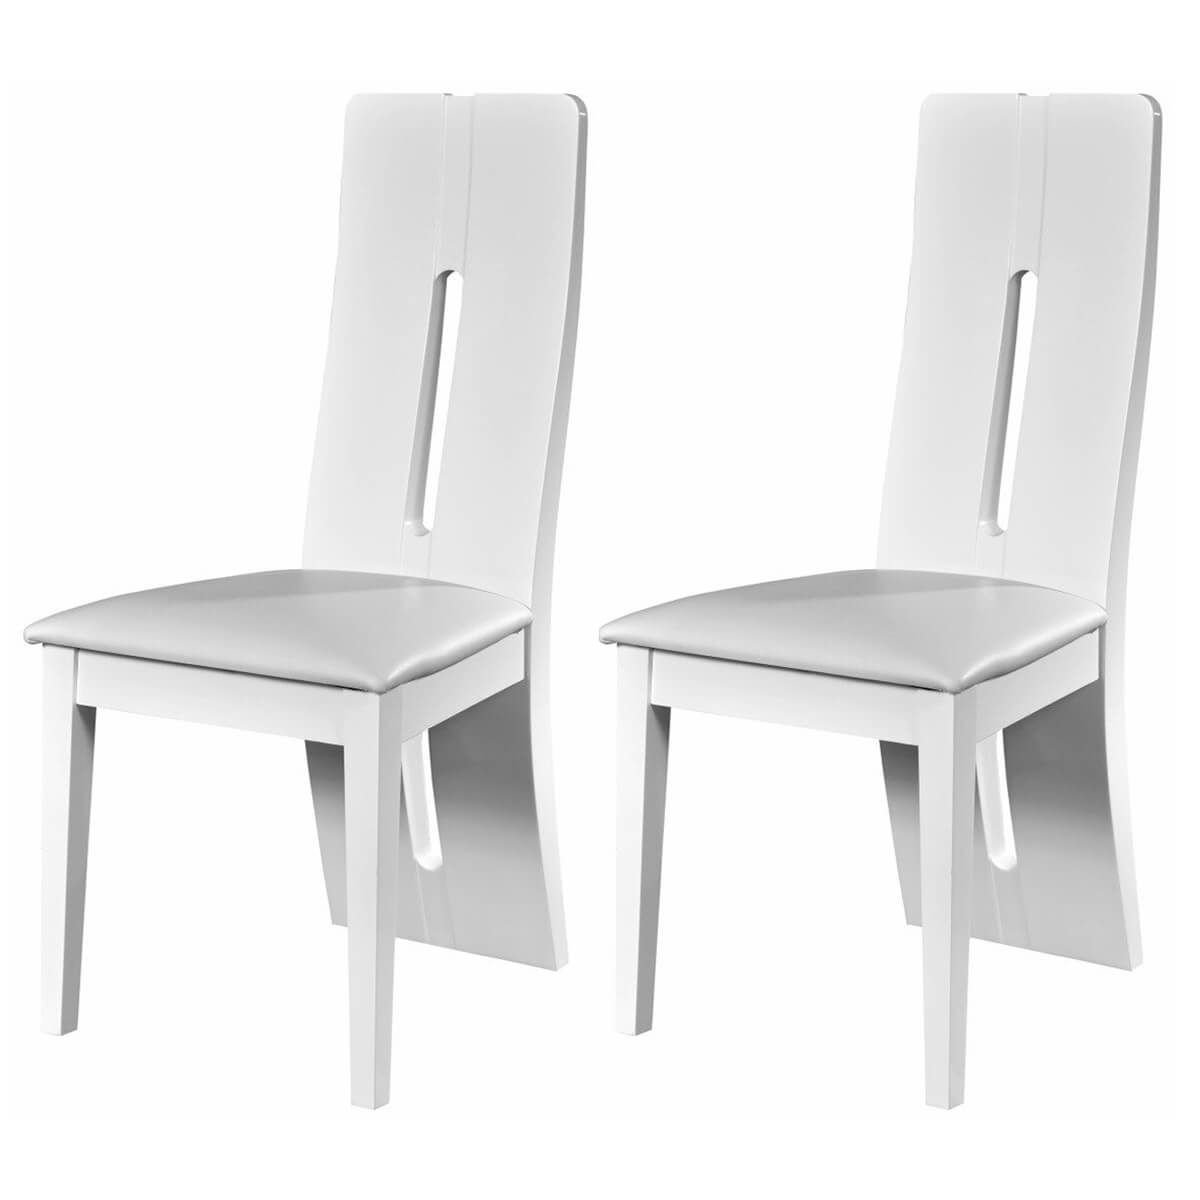 floyd faux leather white high gloss dining chairs fads. Black Bedroom Furniture Sets. Home Design Ideas